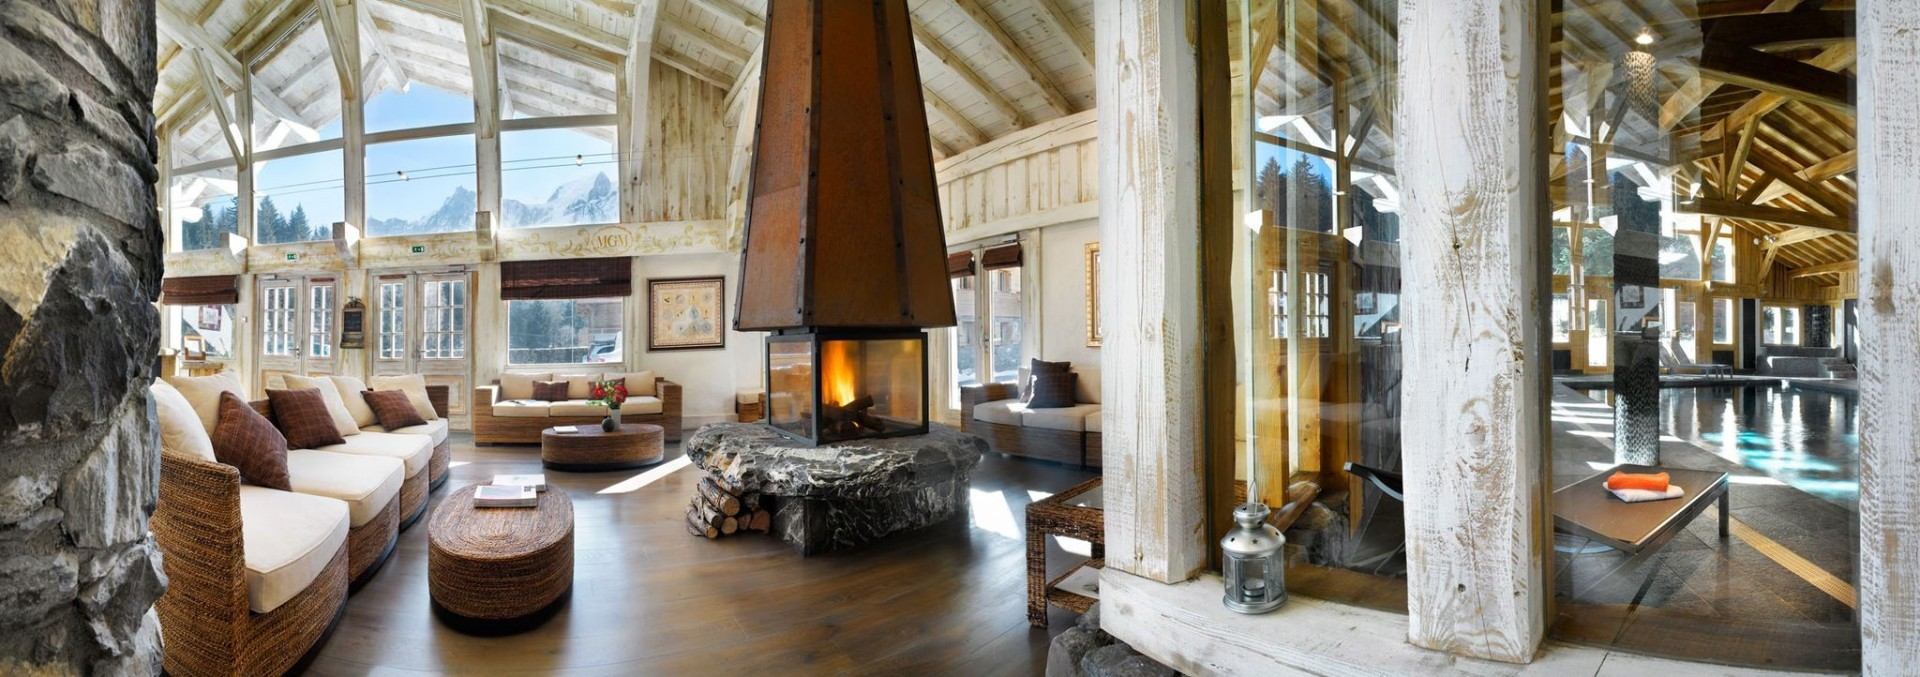 Les Houches Location Appartement Luxe Jacinthe Accueil